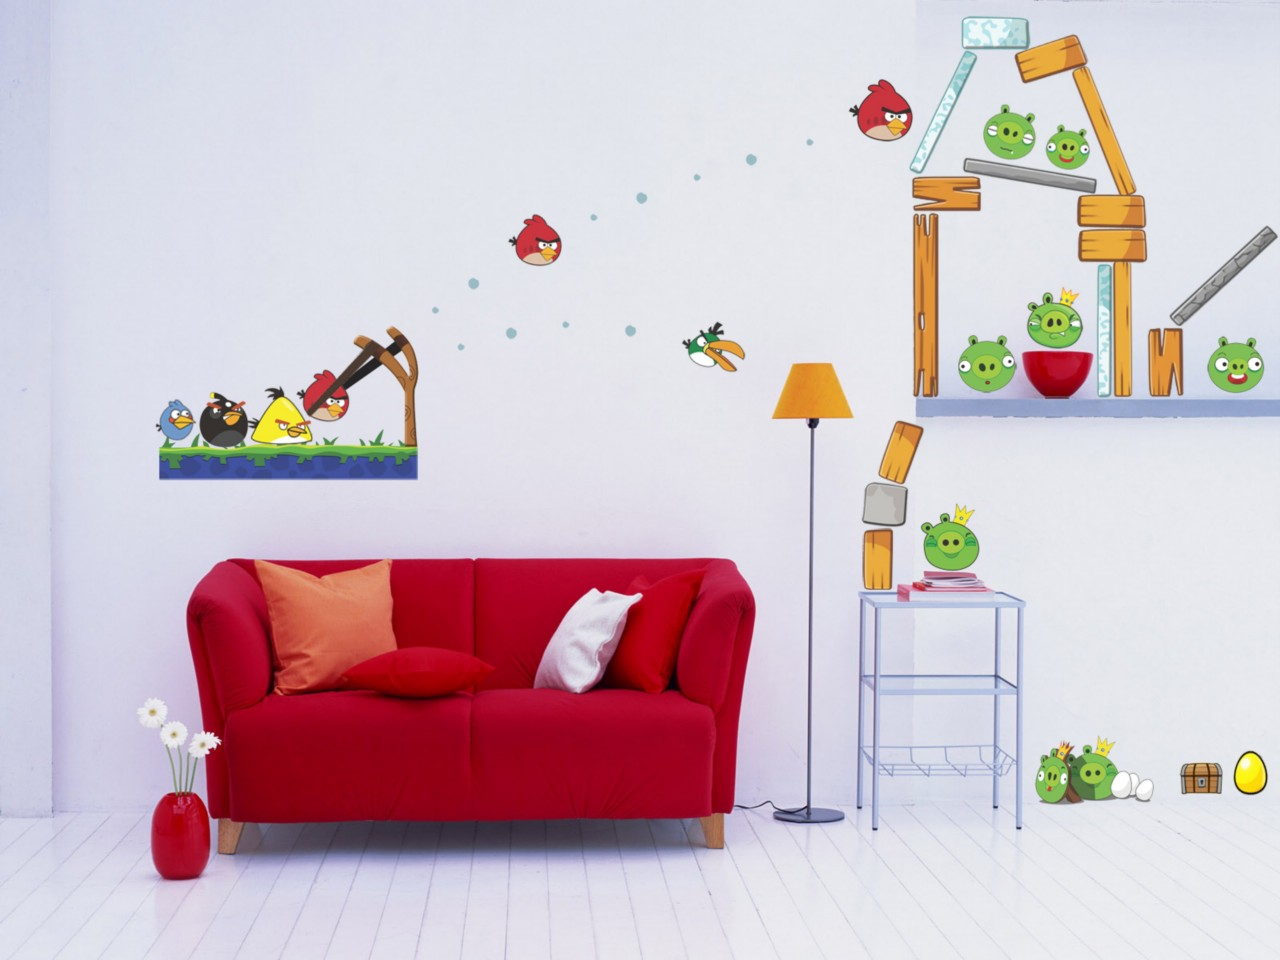 huge angry birds decal removable giant wall sticker mural